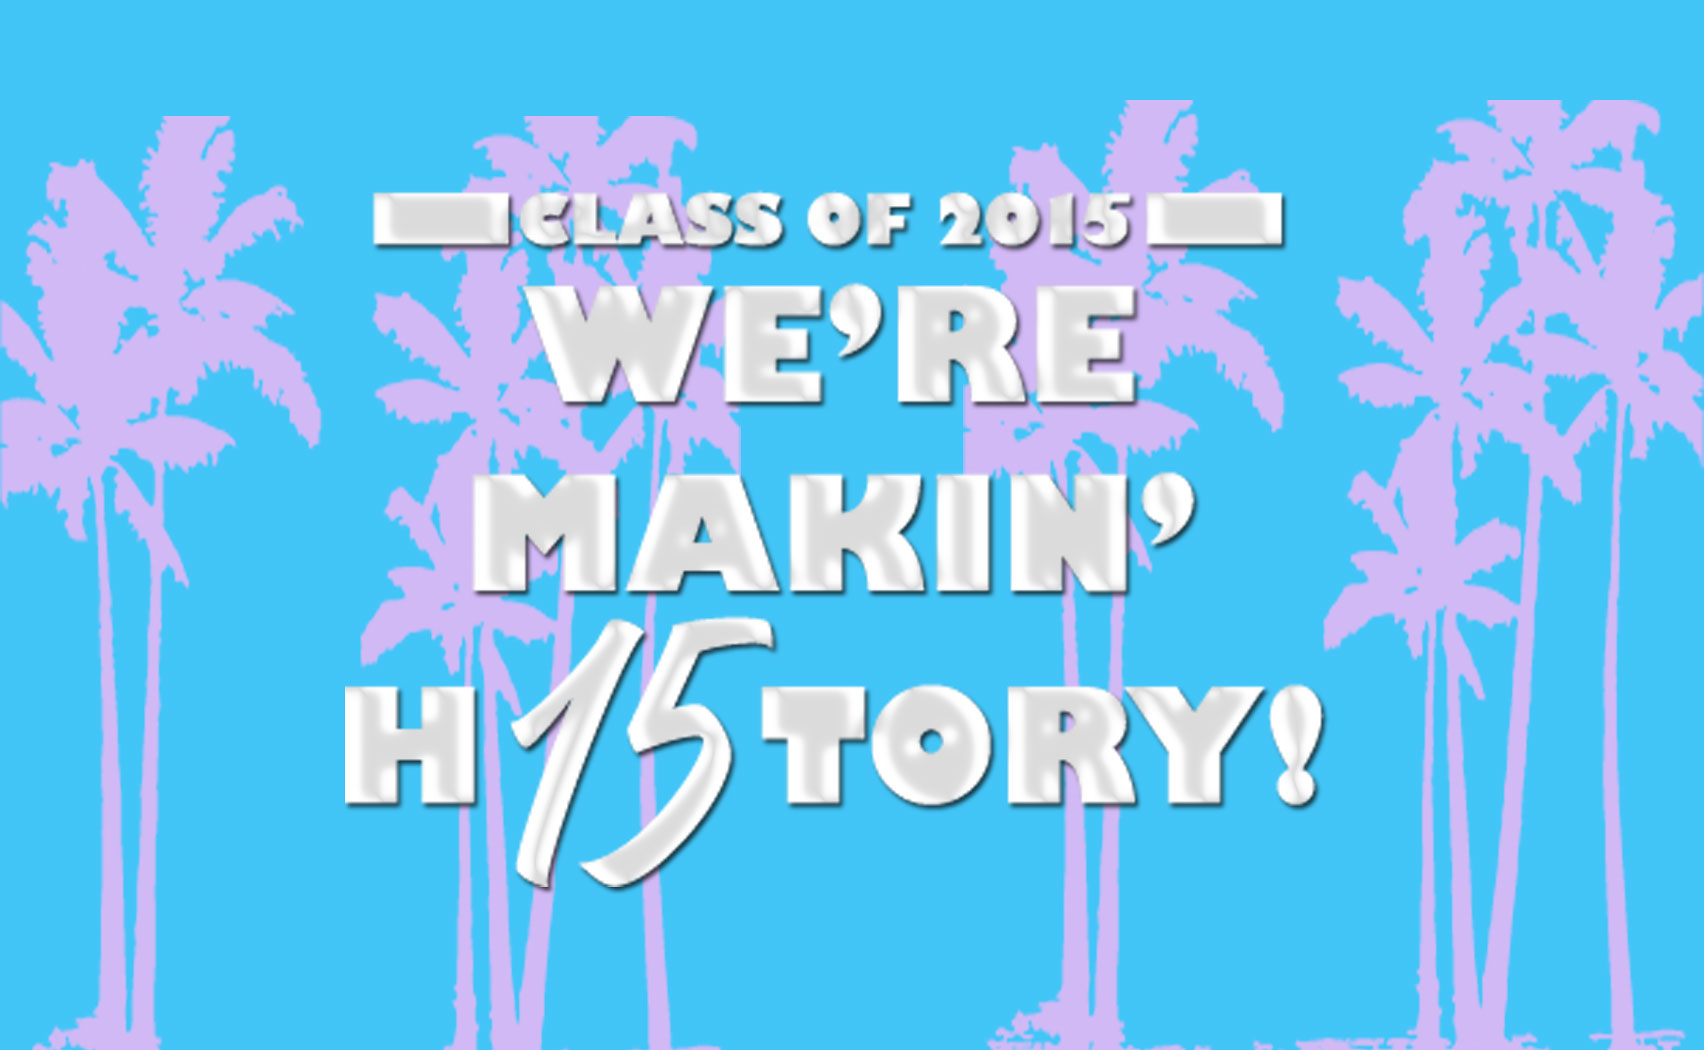 Makin' H15TORY: Custom T-Shirt Phrases Celebrating the Class of 2015